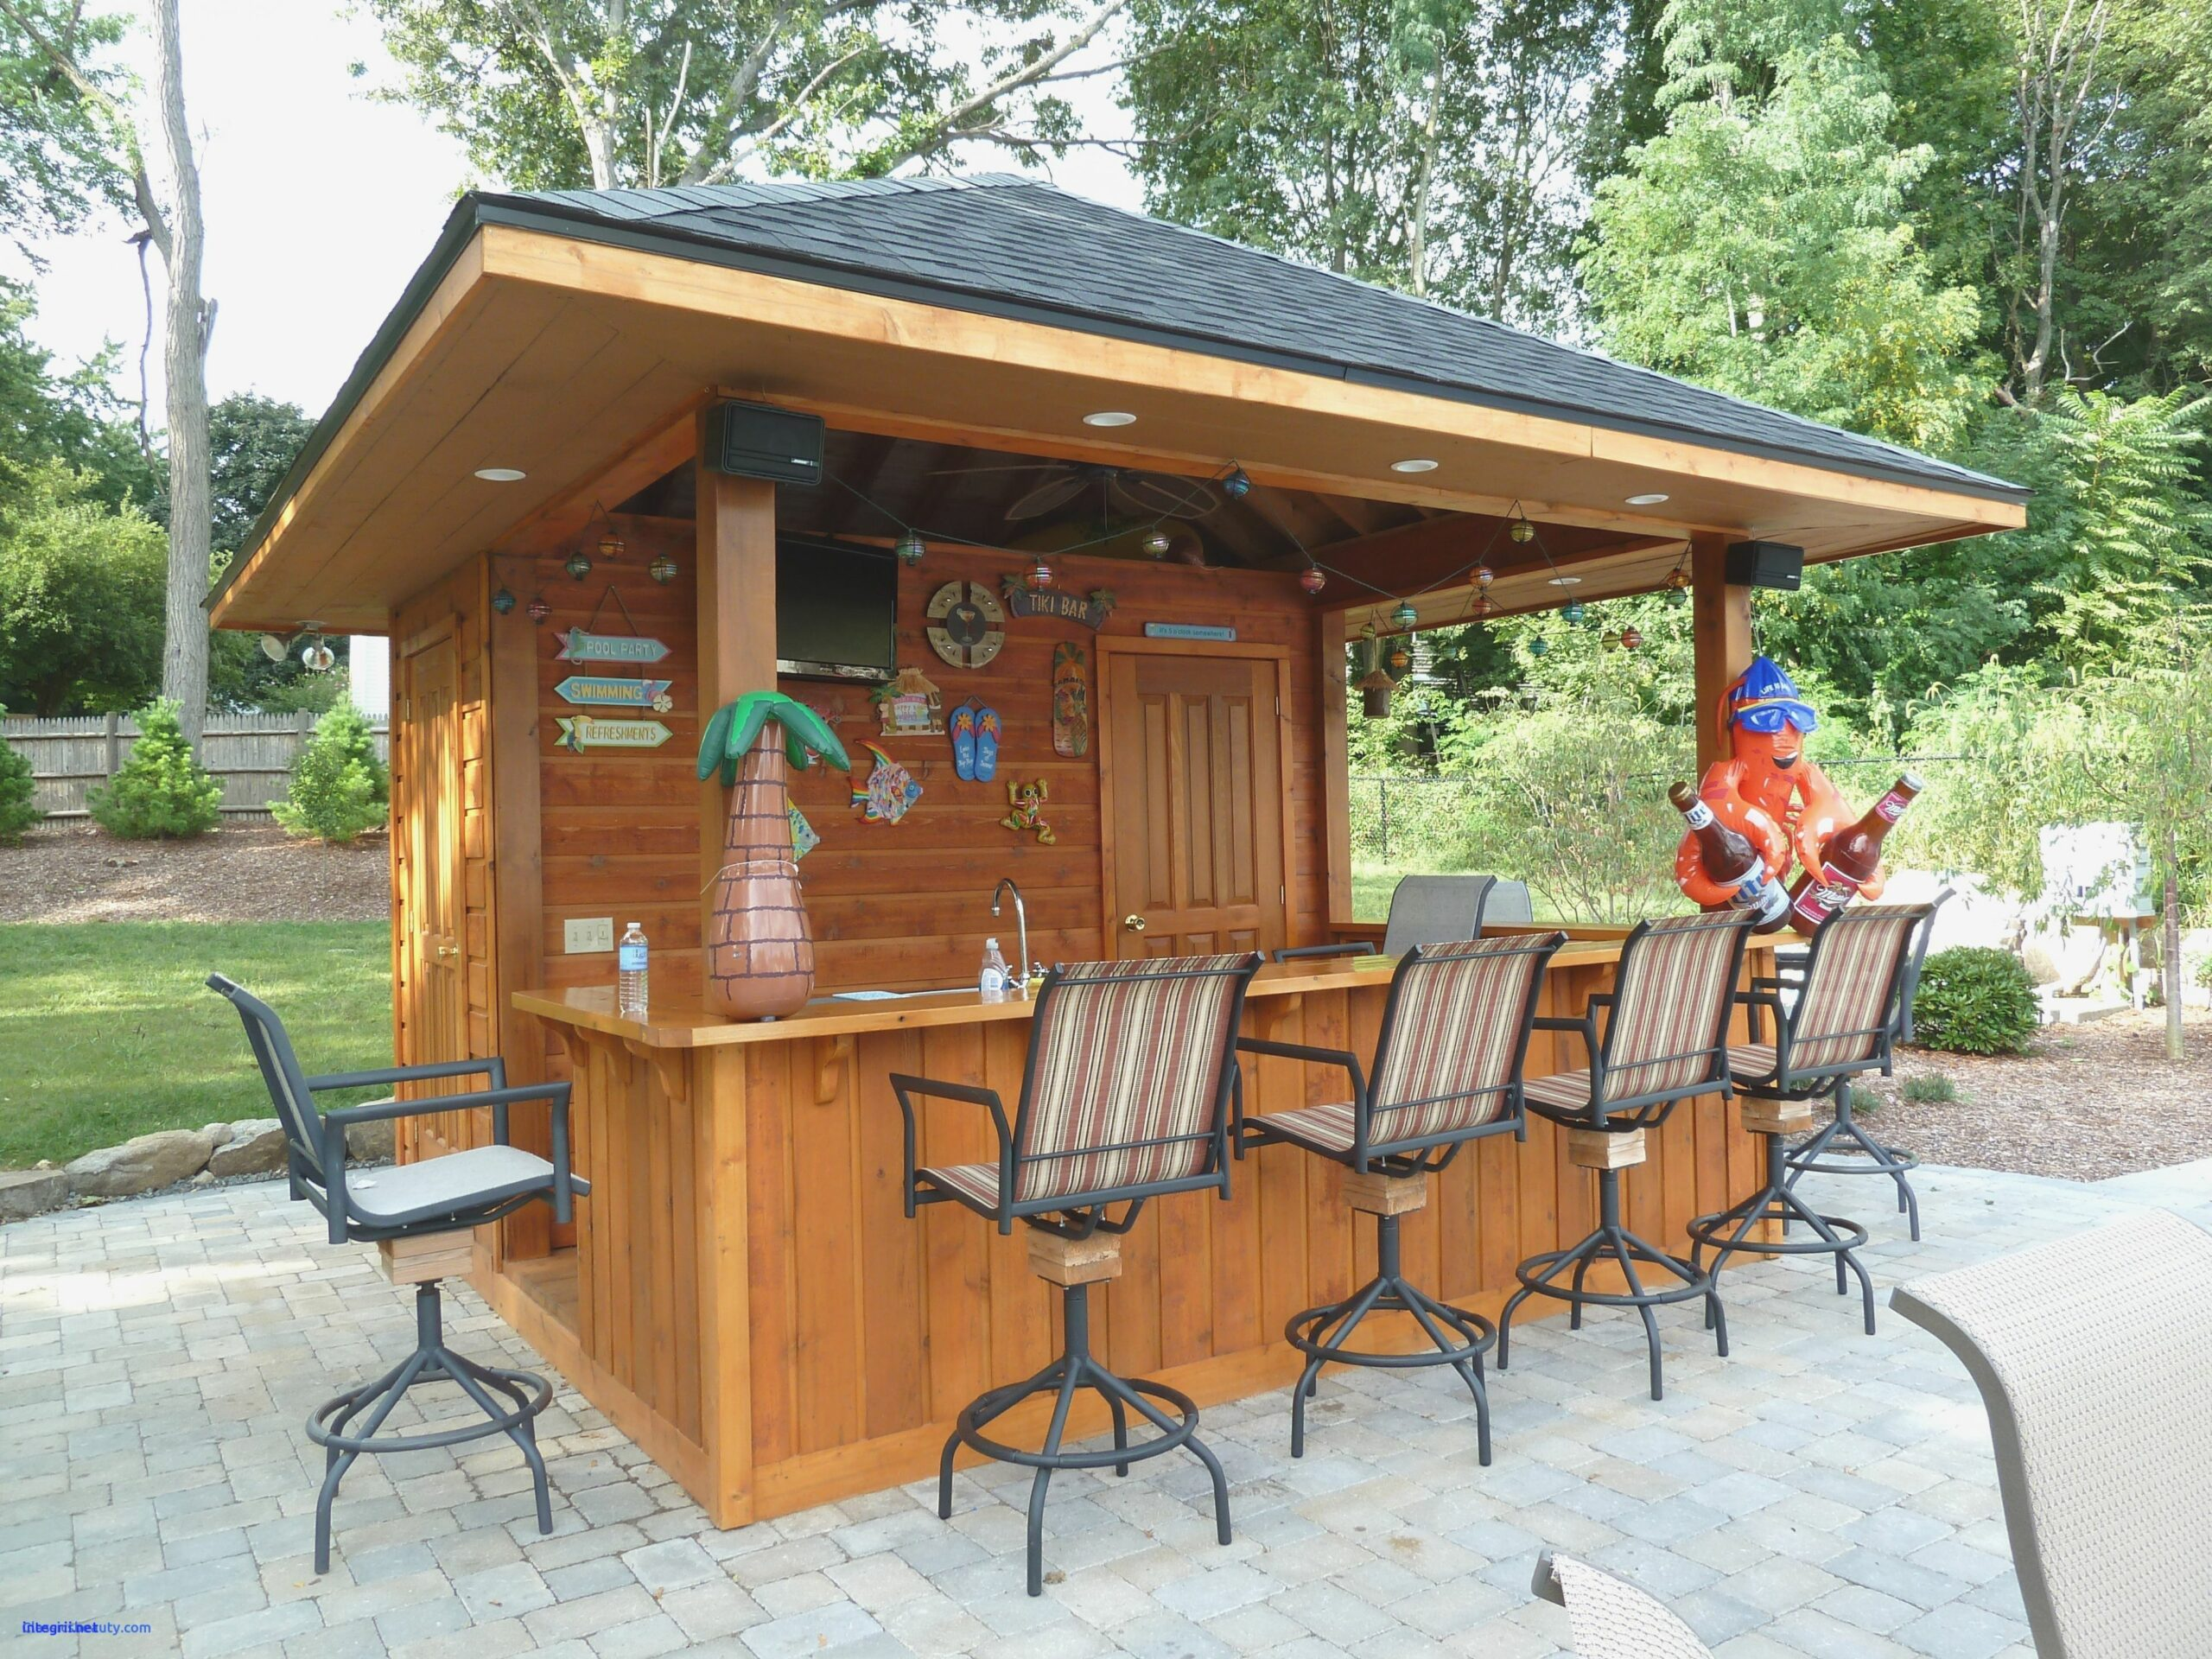 Deck Patio Backyard Tiki Outdoor Bars Hut Bar Concession Stand ..